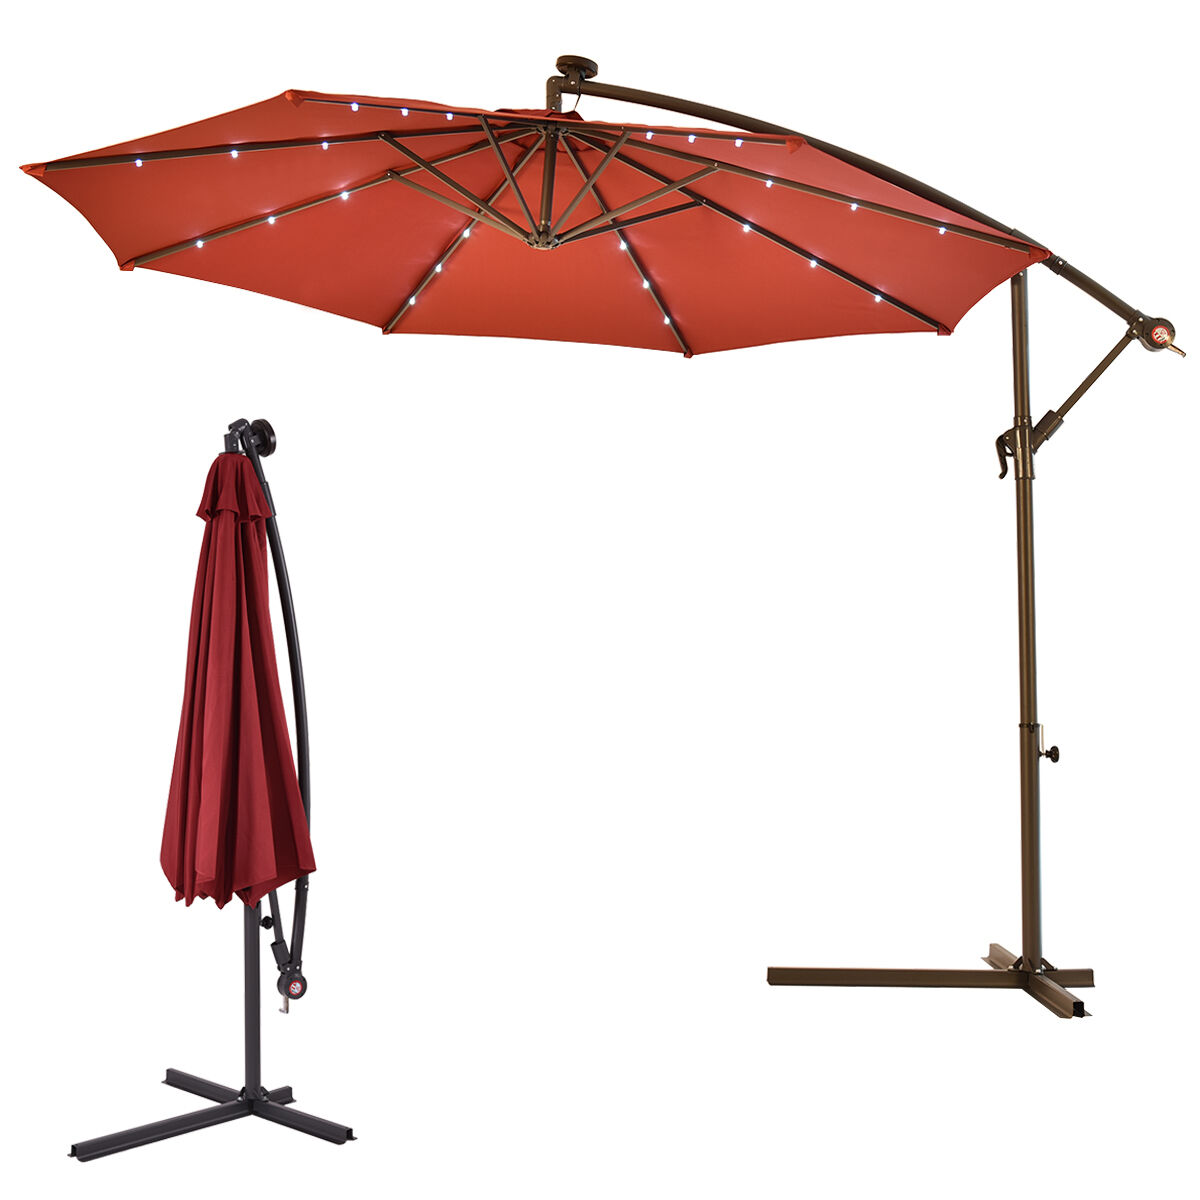 Outdoor Shade Umbrella Outdoor 10 39 Led Hanging Solar Umbrella Patio Sun Shade